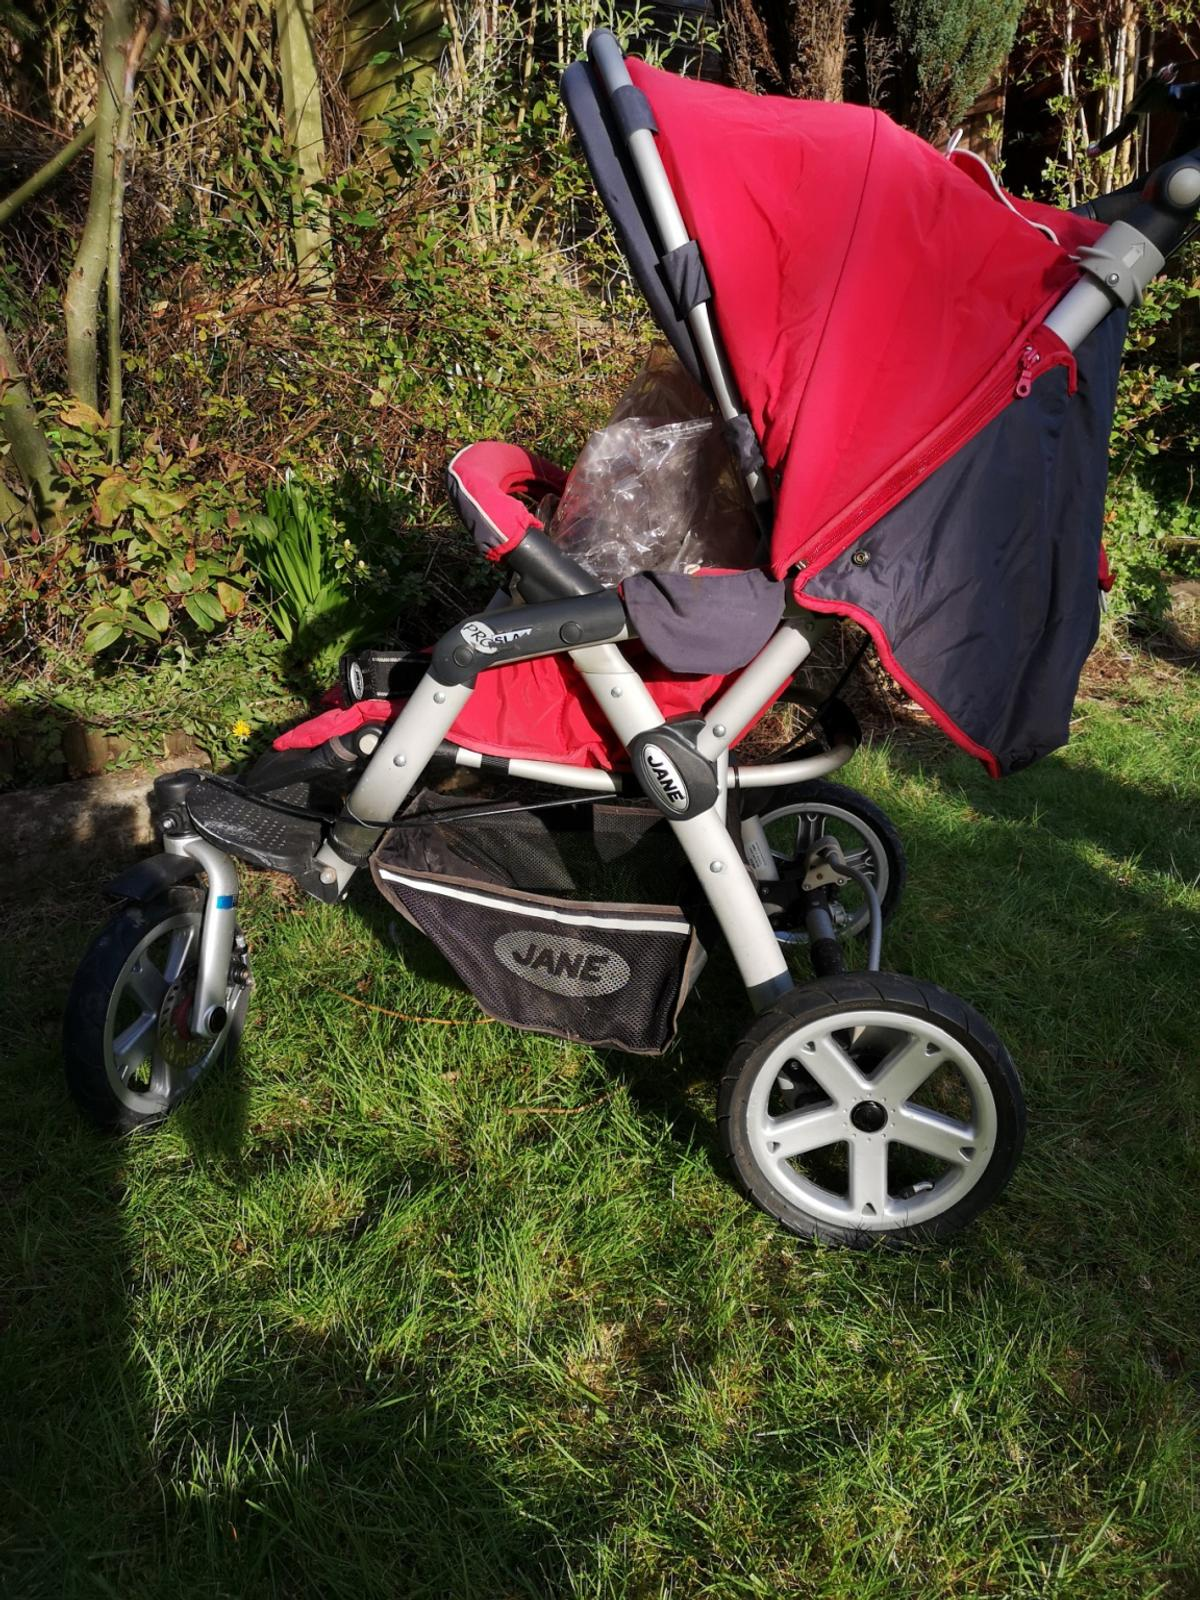 buggy, car seat, parasol, rain over, seat support all included  has been stored and needs some TLC, new inner tubes poss and a good clean ,a lovely usable buggy will be wiped over before collection  all covers are removable and washable signs of wear and tear are evident. all terrain 3 wheel jogger style removable hood, baby liner, basket, rear wheels one handed fold, 2 handed unfold adjustable handle, foot rest and multiple seat recline wheel fixed @front as clasp broken but fixable to swivel